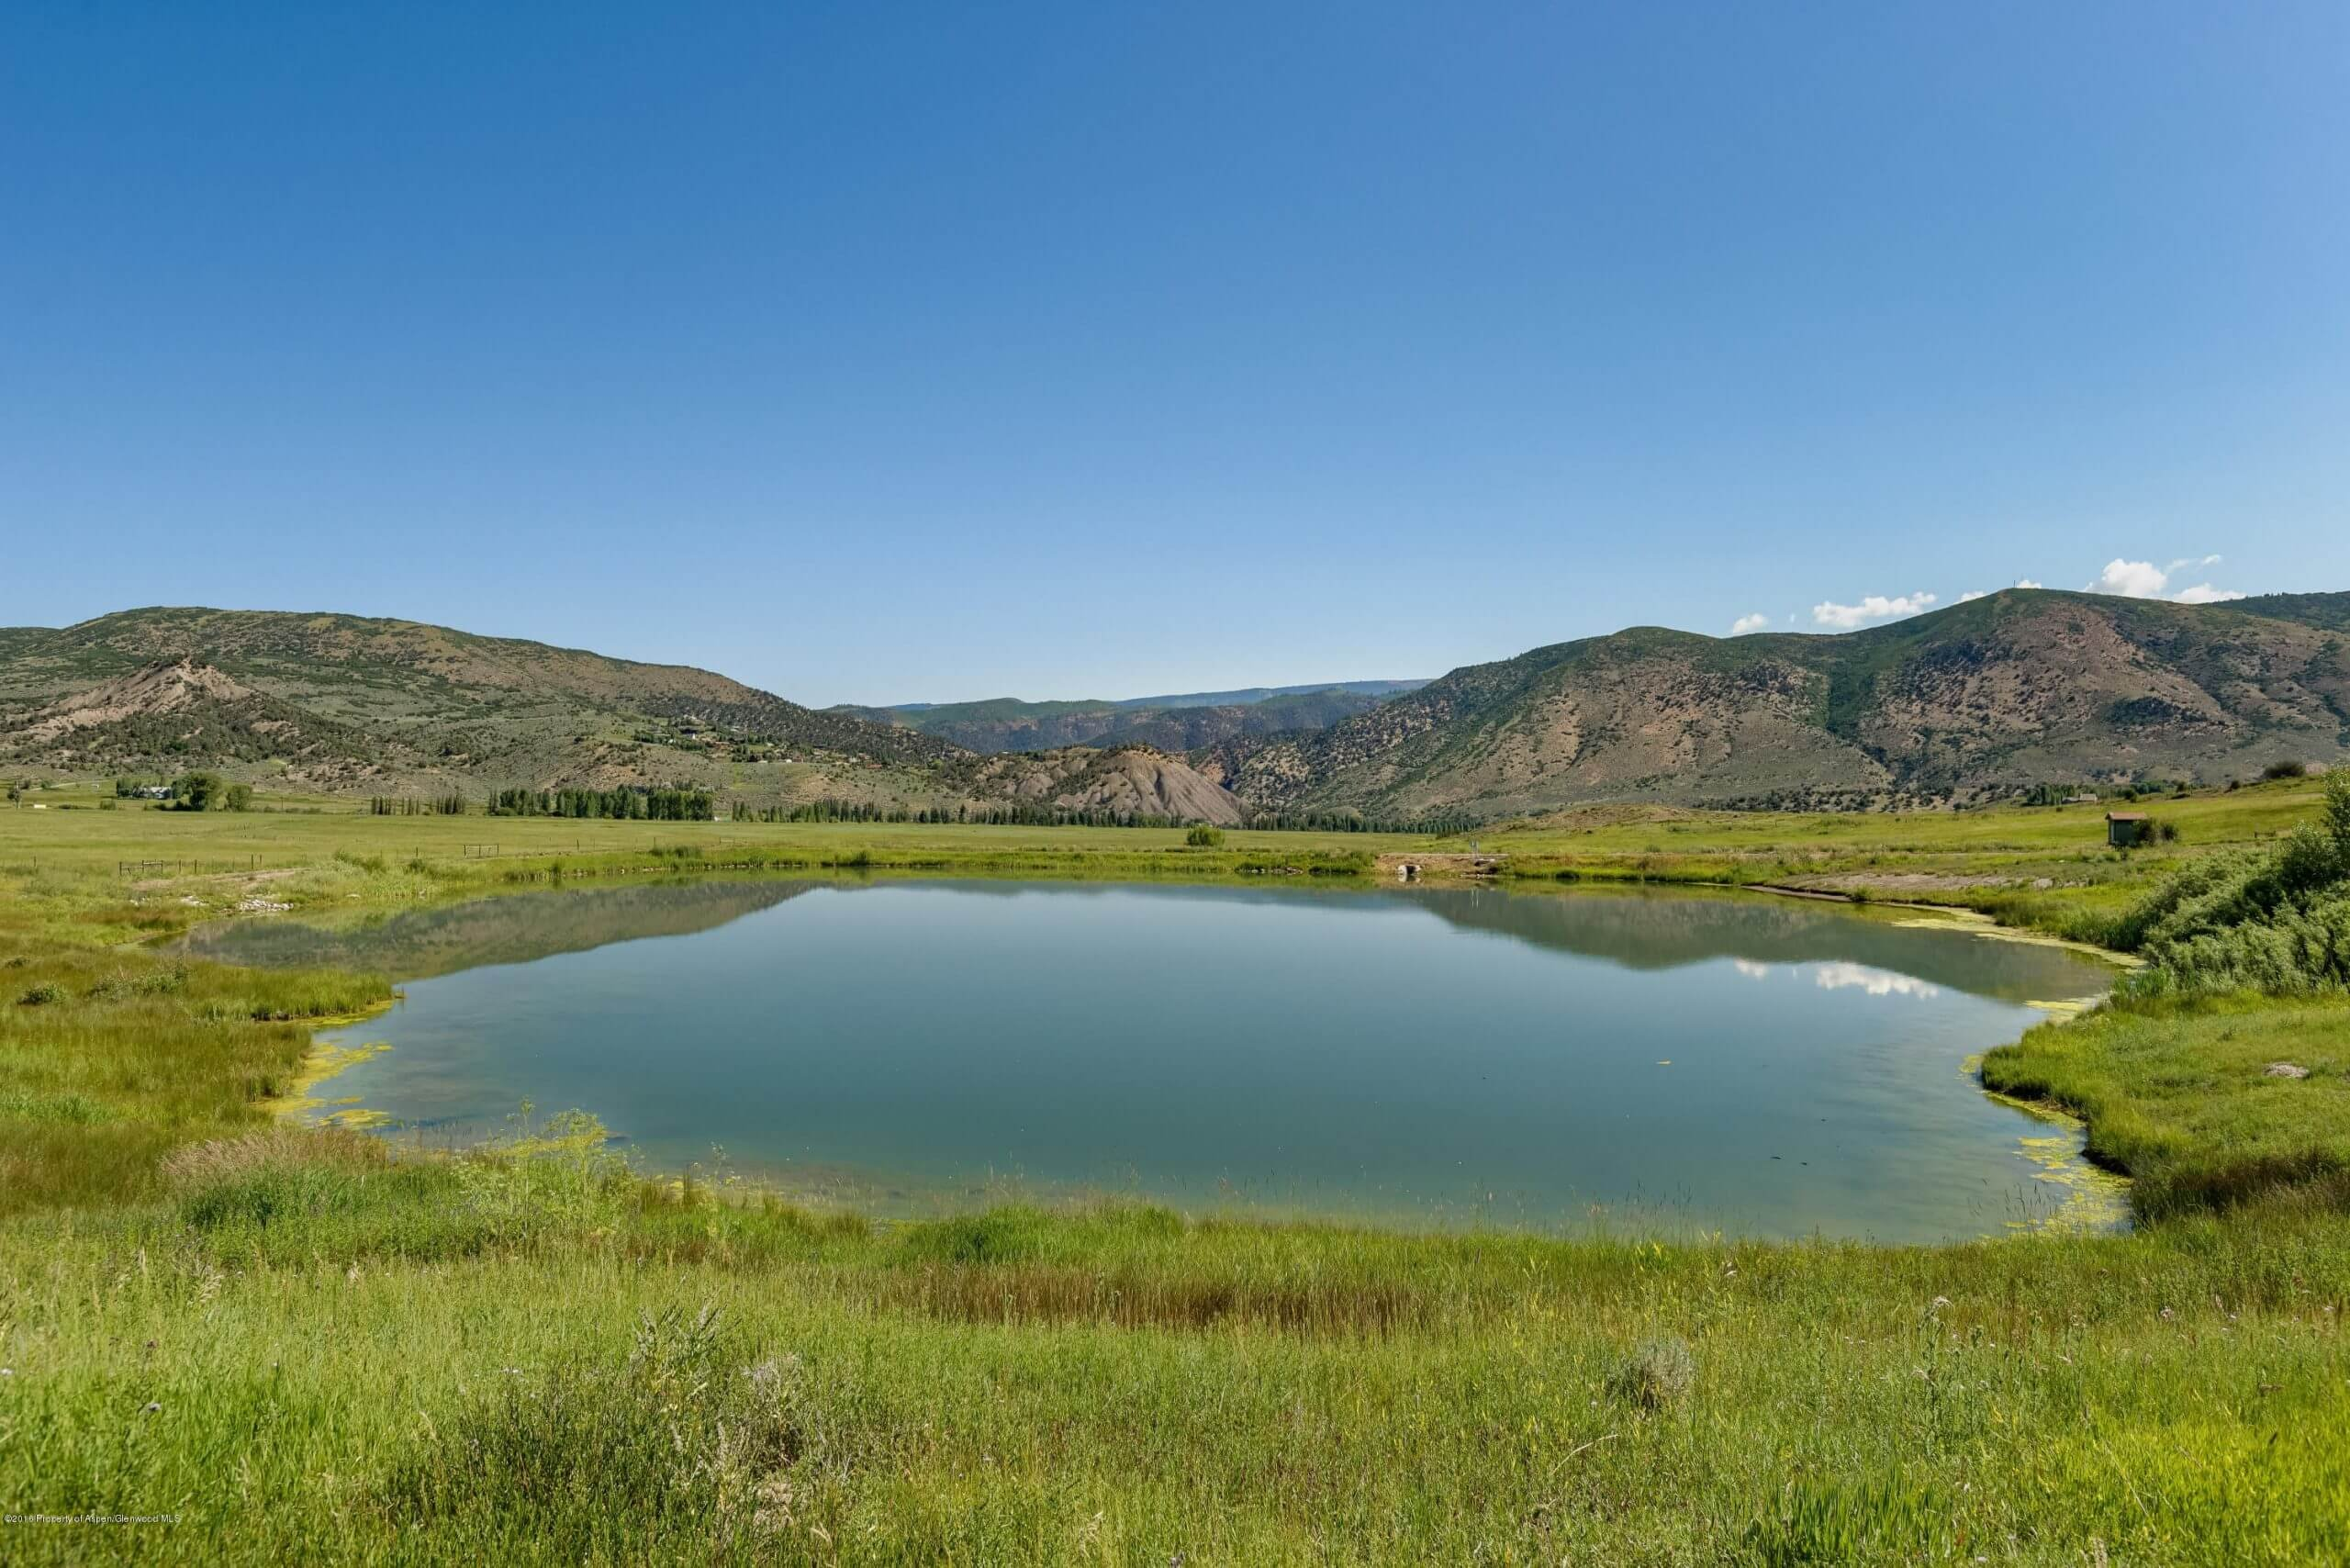 3-Acre Vacant Lot in Old Snowmass's Lazy O Ranch 1,500 Acres Open Space Sells at $450,000 Image